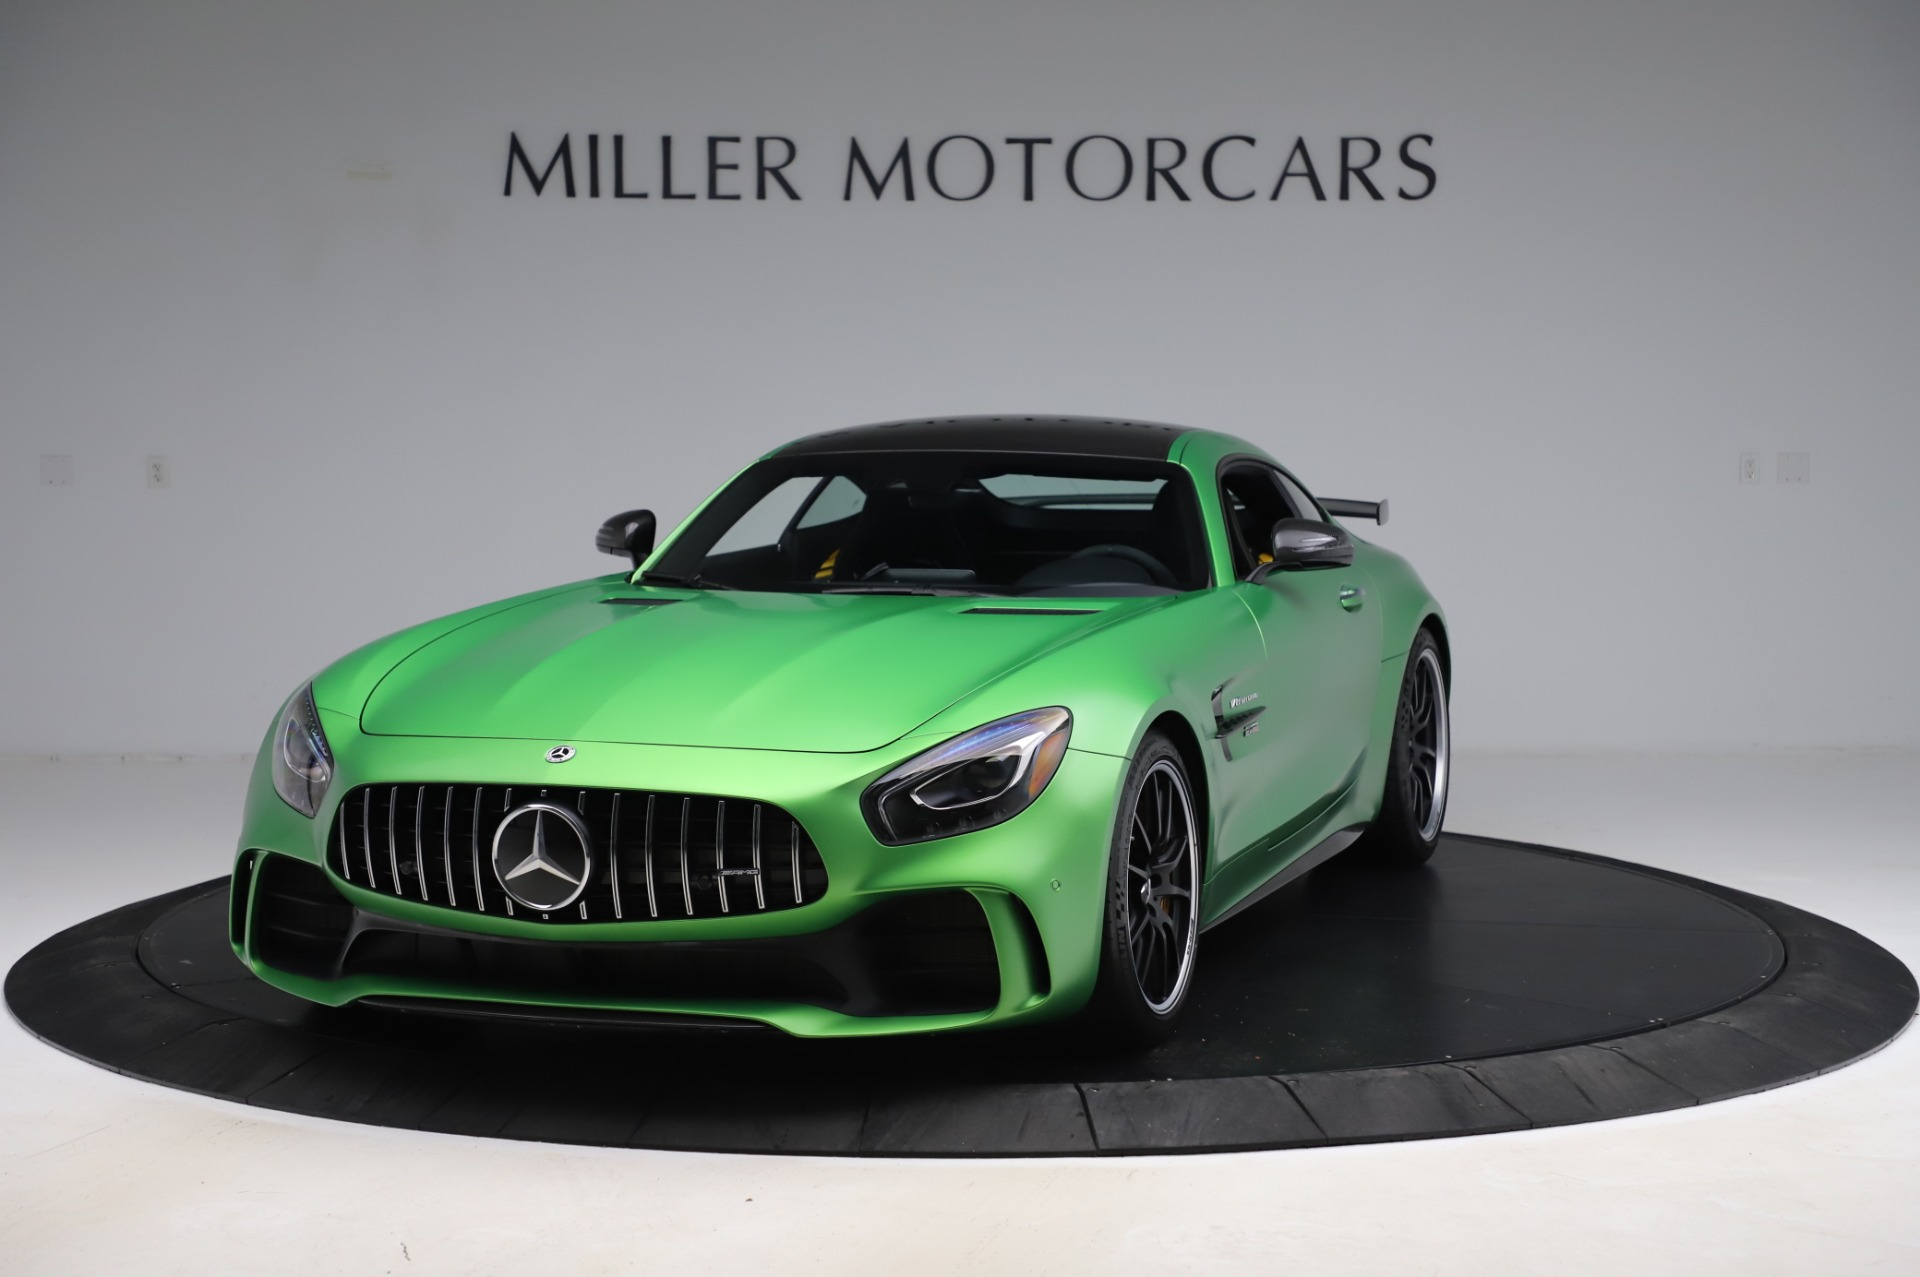 Used 2019 Mercedes-Benz AMG GT R for sale $155,900 at Aston Martin of Greenwich in Greenwich CT 06830 1